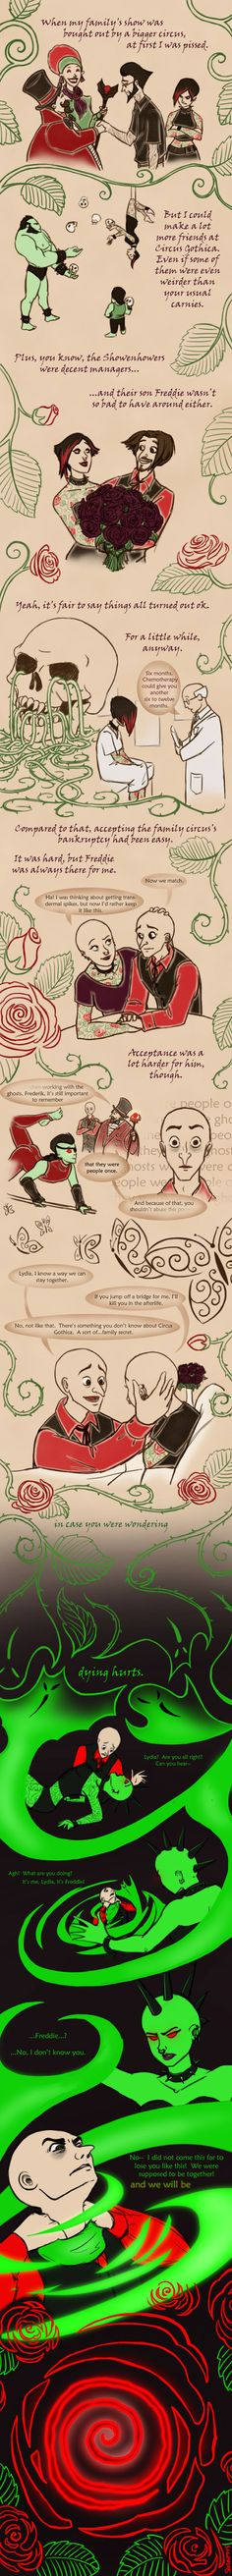 As You Were: Lydia's Story by Sarapsys on deviantART I've always wondered how they got the way they are.